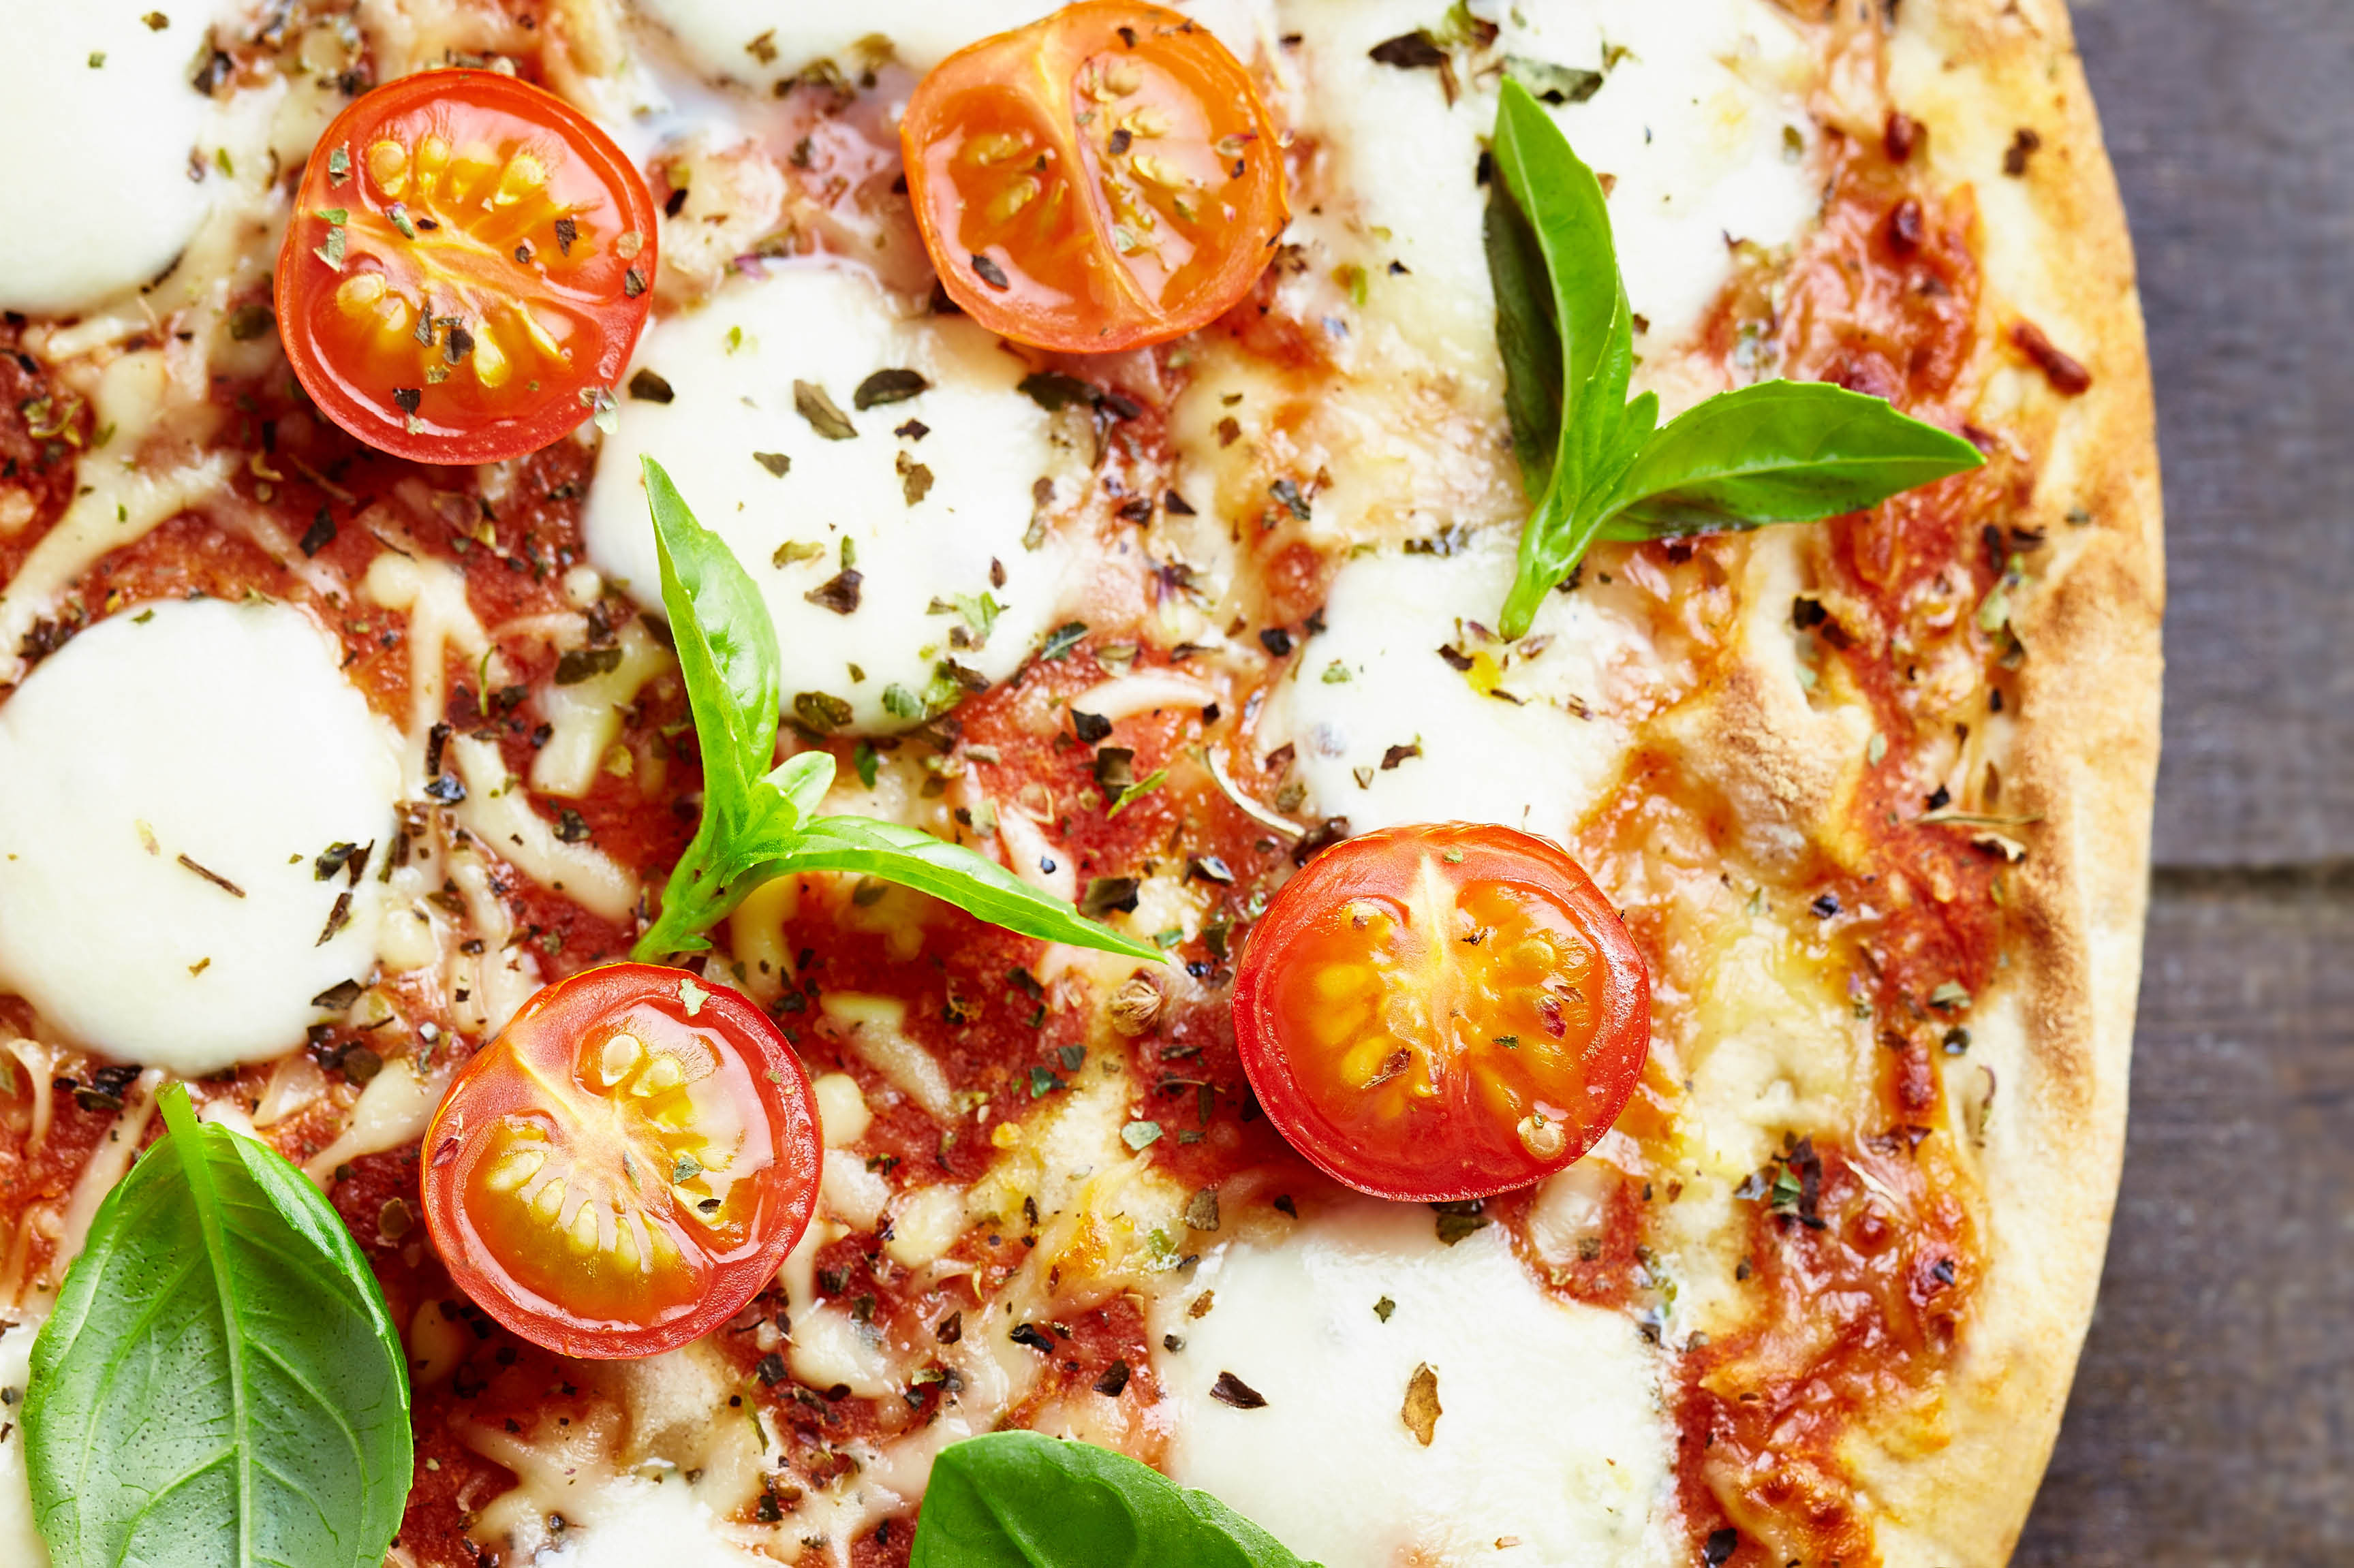 Italian recipe pizza loaded with pizza toppings